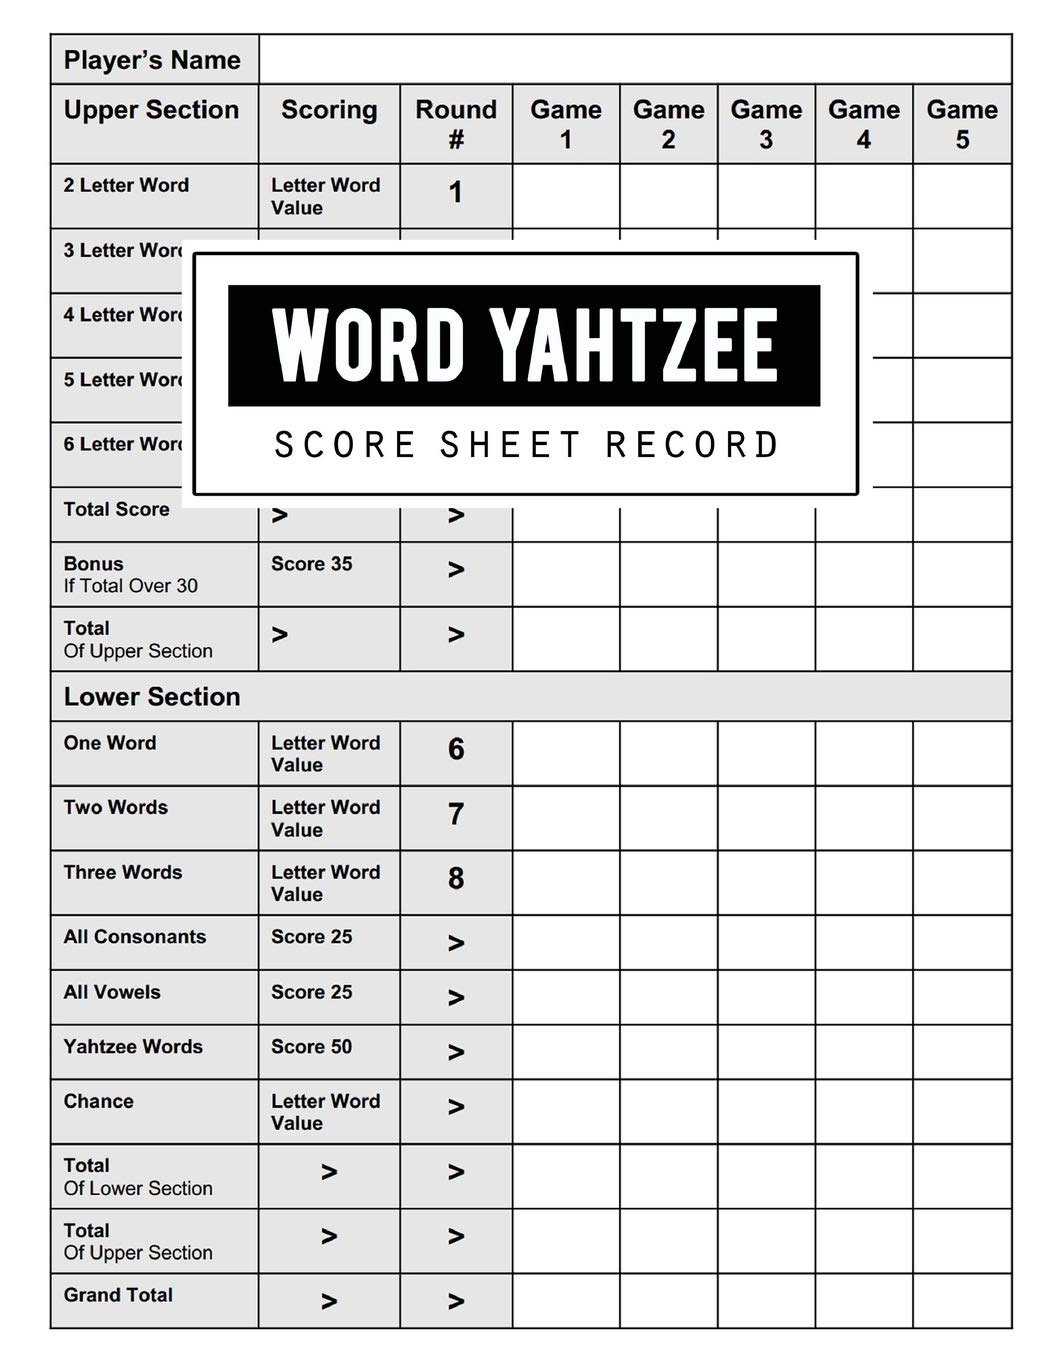 picture regarding Yahtzee Score Sheet Printable named Phrase Yahtzee Rating Historical past: Term Yahtzee Recreation Background Keeper